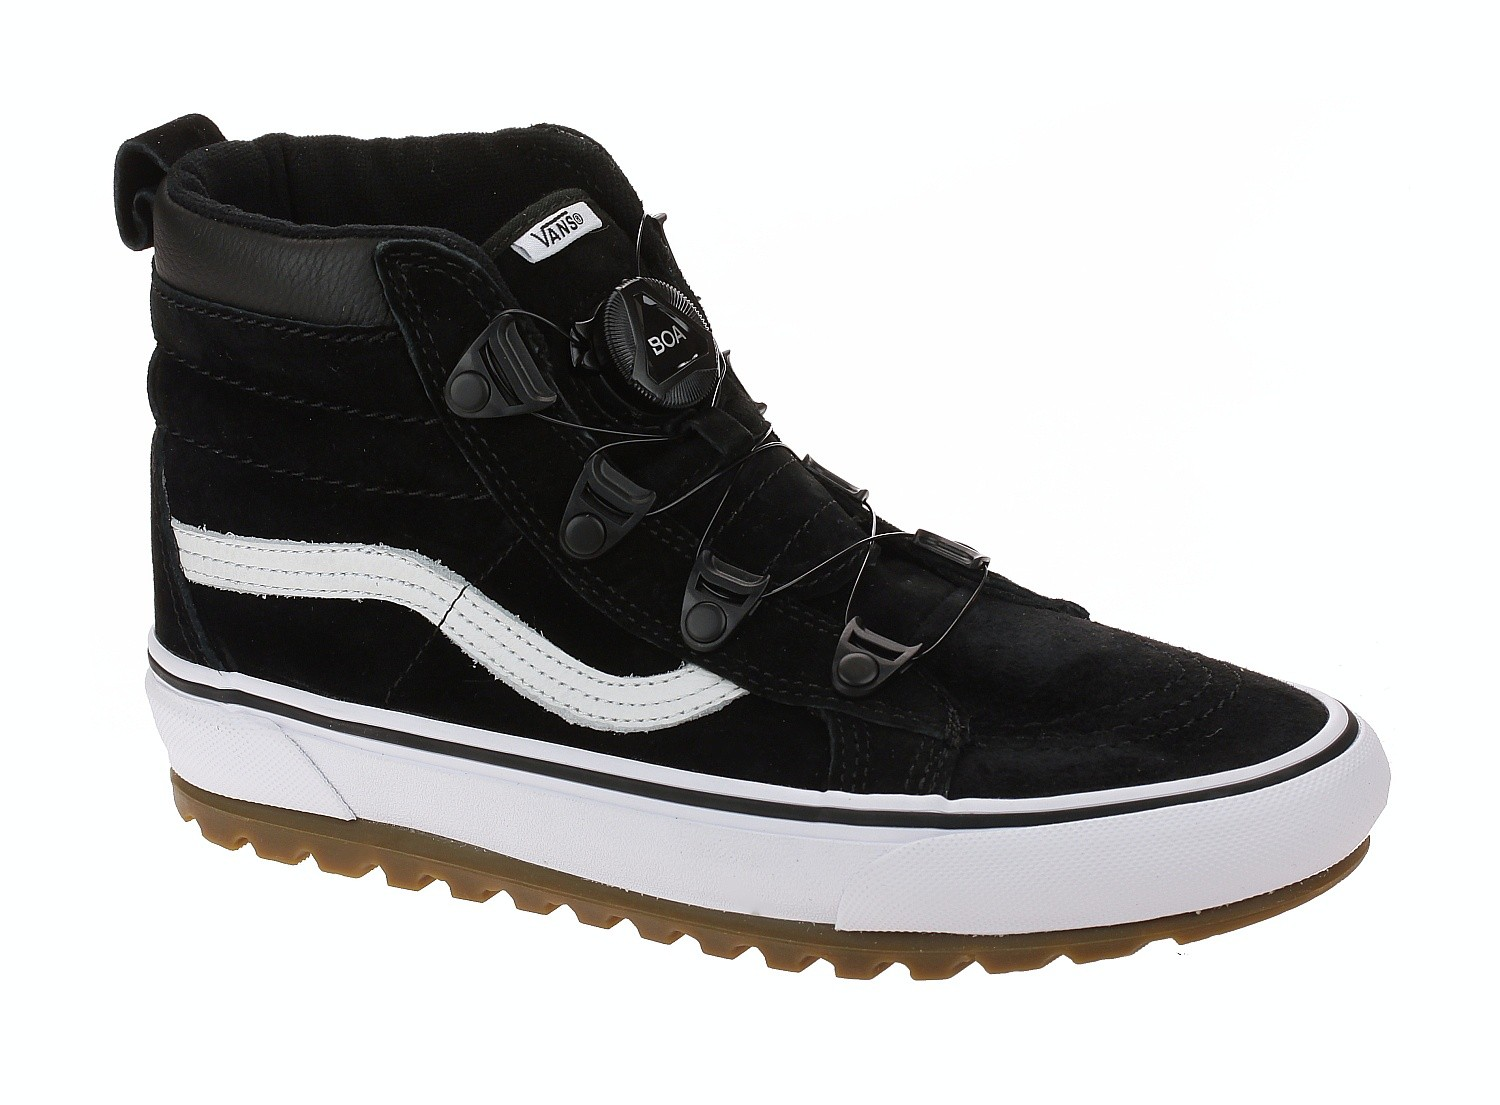 shoes Vans Sk8-Hi MTE Boa - MTE/Black/True White - blackcomb-shop.eu